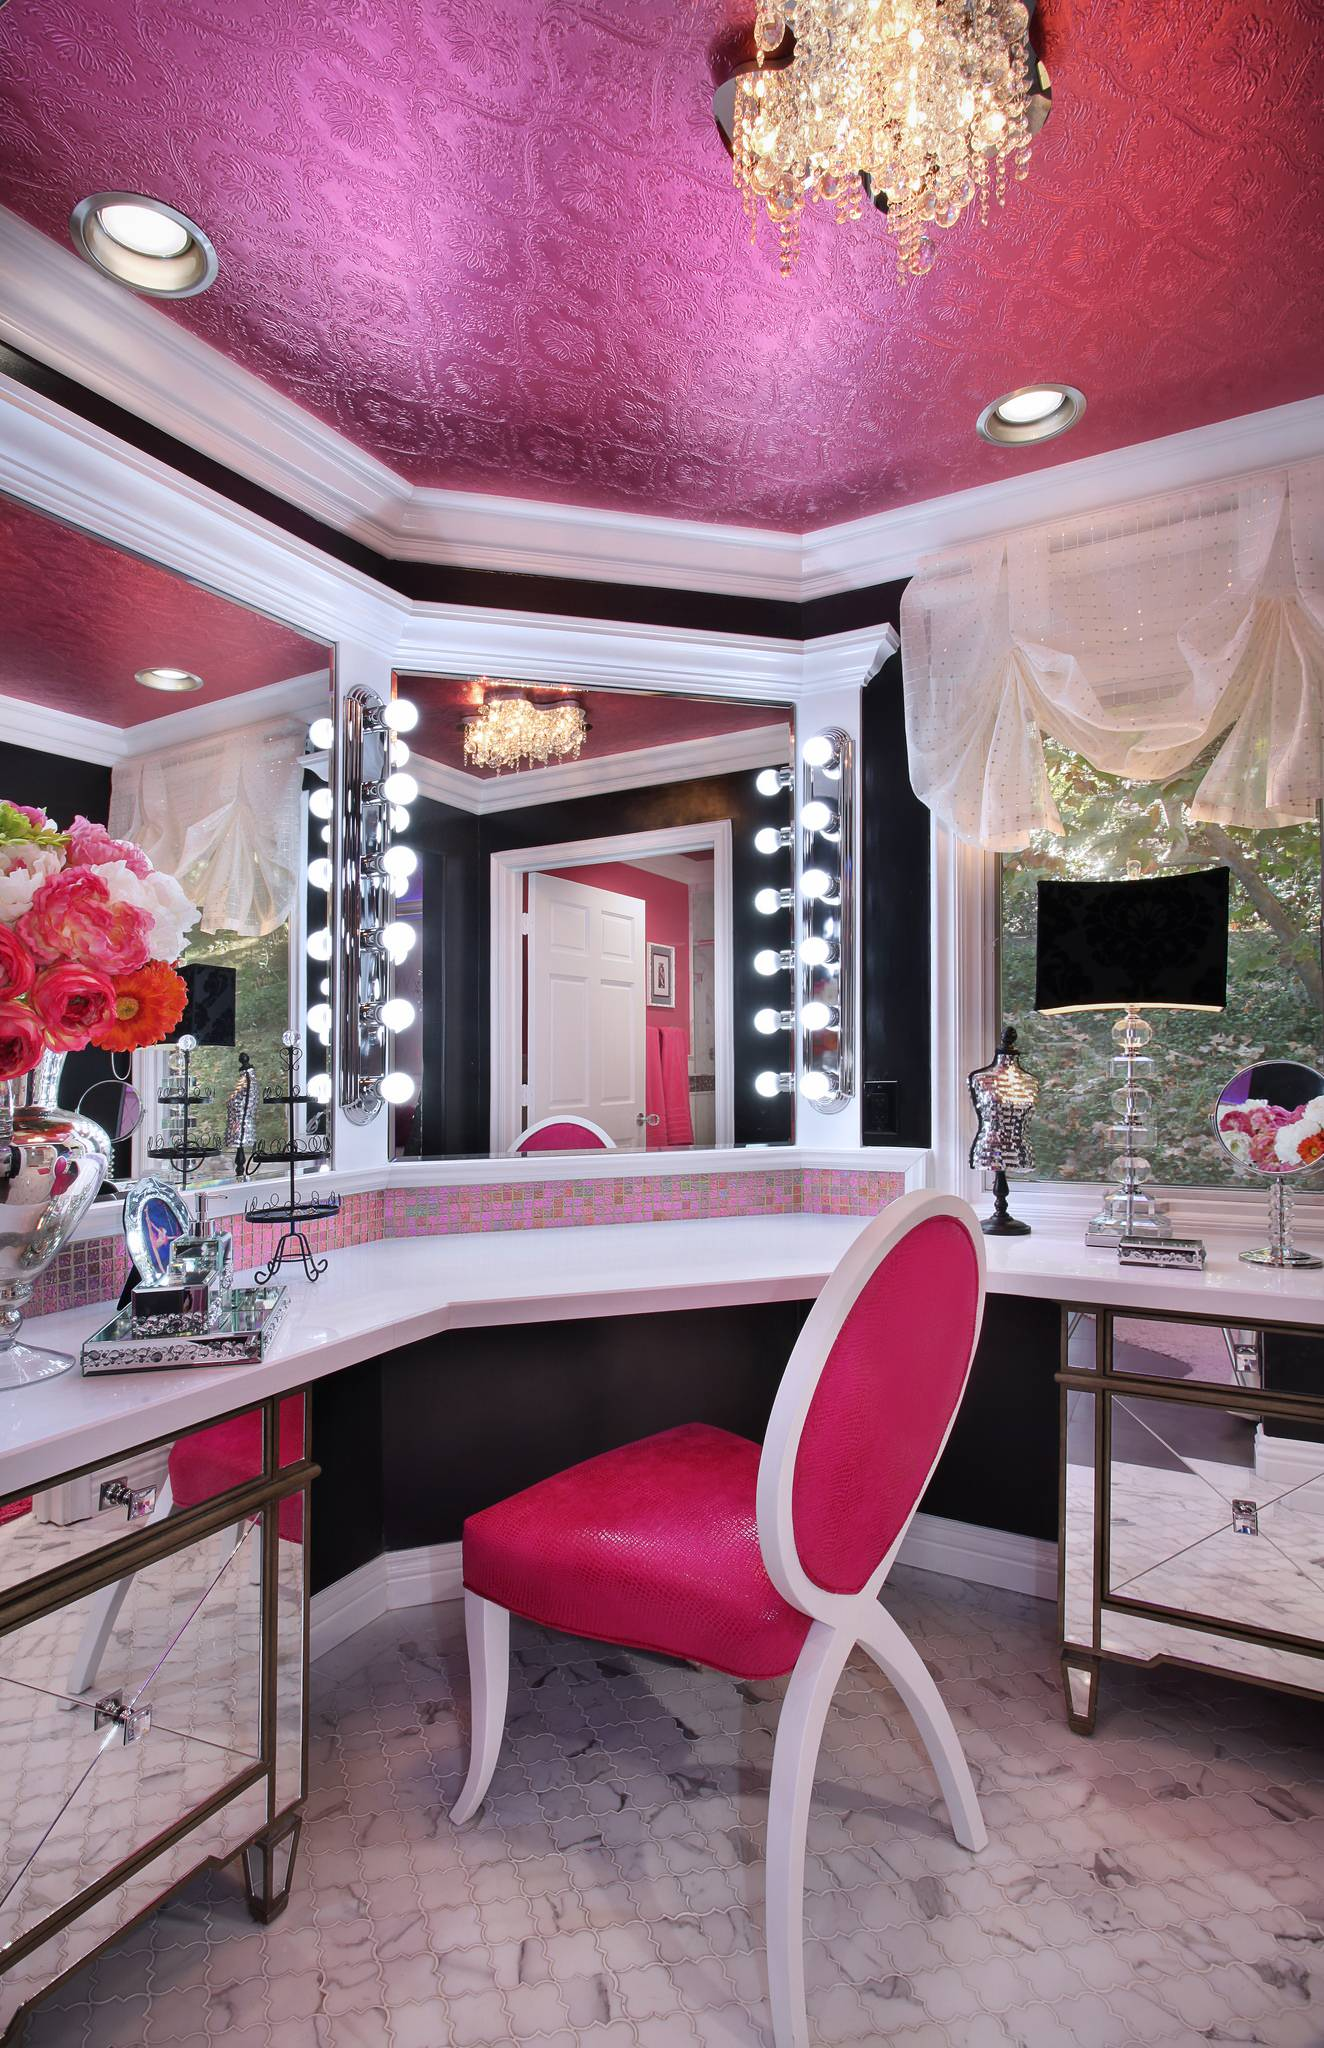 7 steps to your own kylie jenner inspired glam room betterdecoratingbiblebetterdecoratingbible Make home design